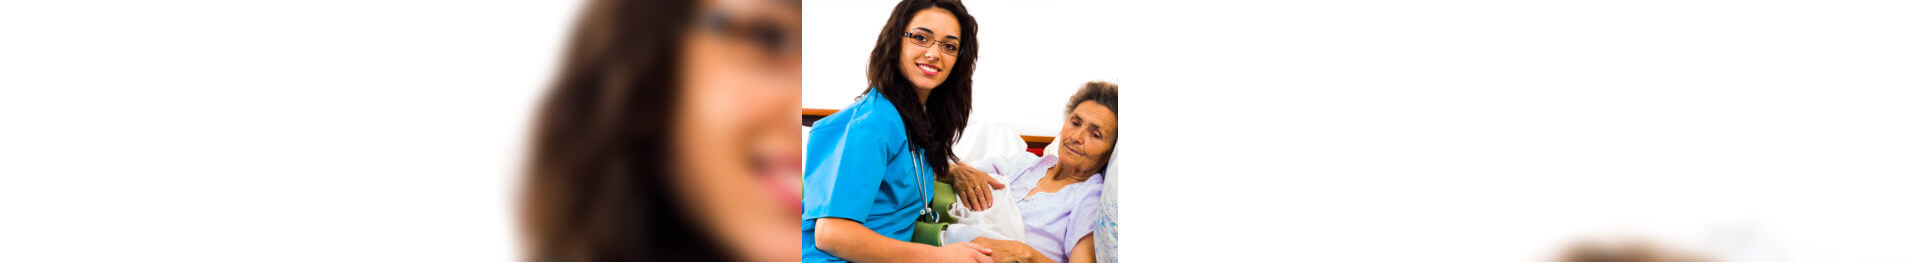 nurse taking care of an elderly woman in bed